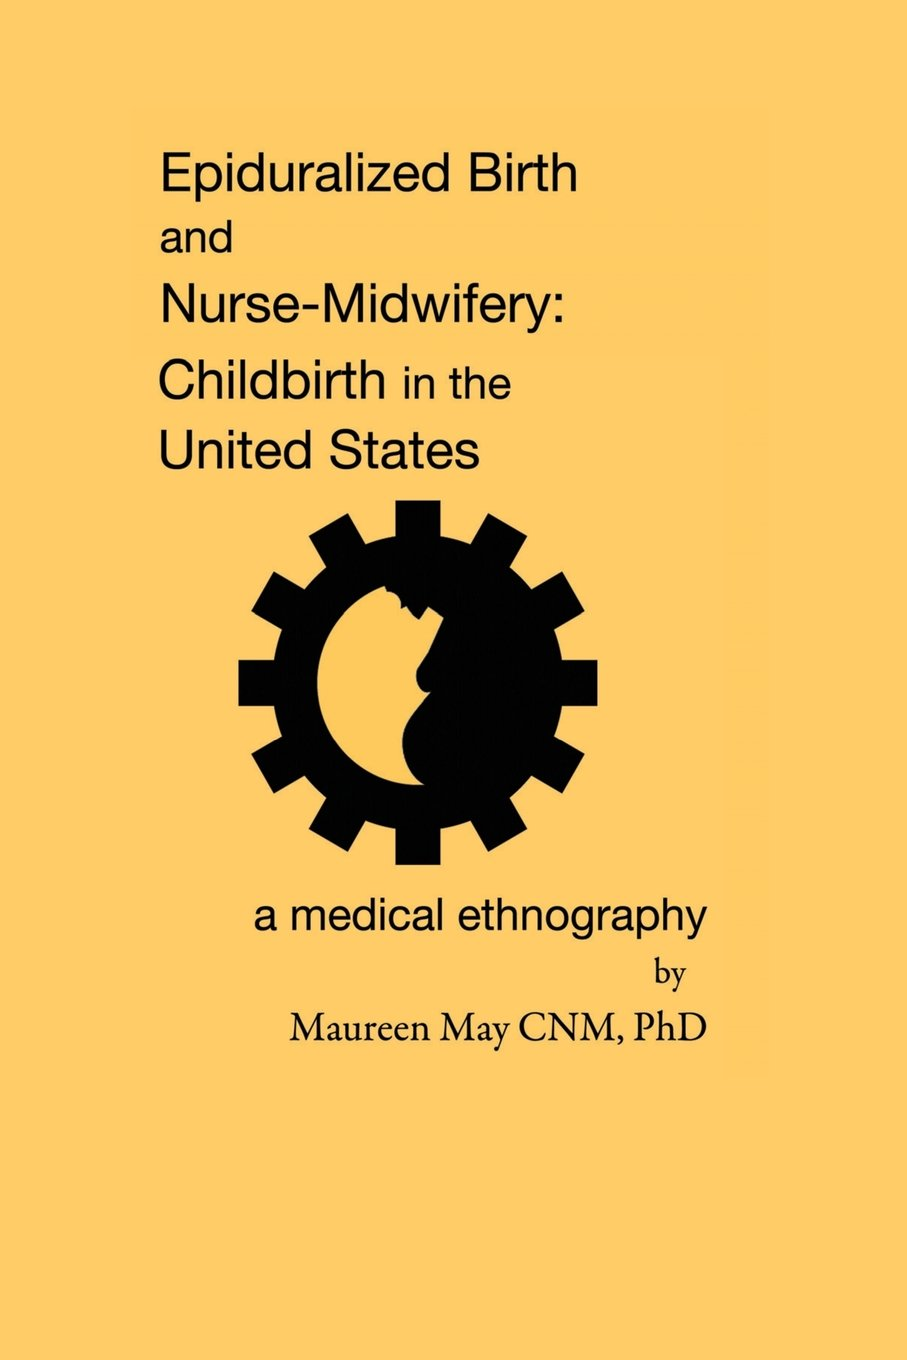 midwifery dissertation ideas airplane fueler resume apa thesis  midwifery dissertation ideas order paper writing help midwifery dissertation ideas epiduralized birth and nurse midwifery childbirth